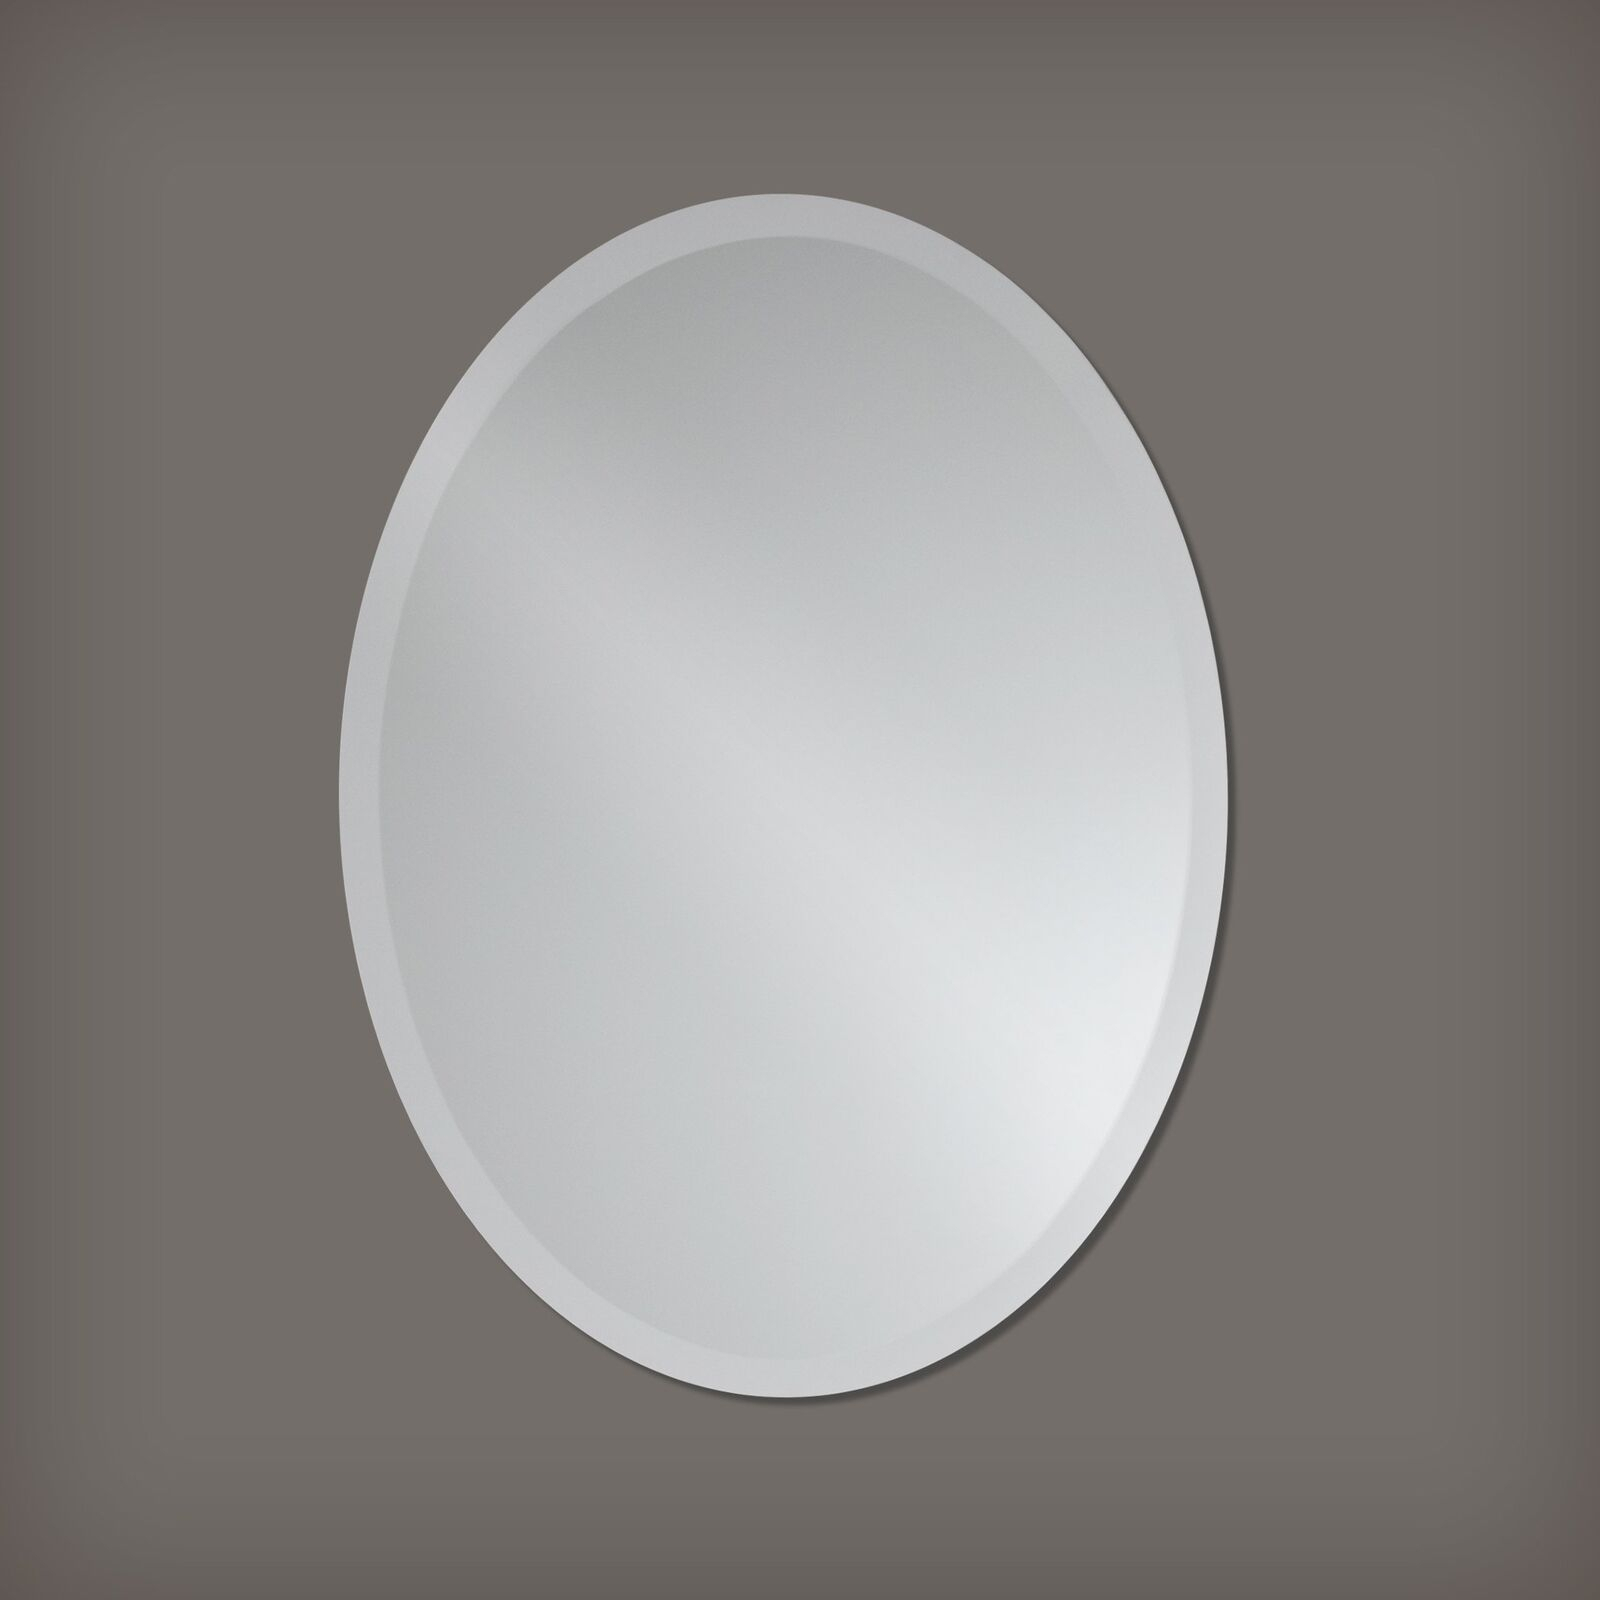 Small Frameless Beveled Oval Wall Mirror Bathroom, Vanity, For Thornbury Oval Bevel Frameless Wall Mirrors (View 17 of 20)